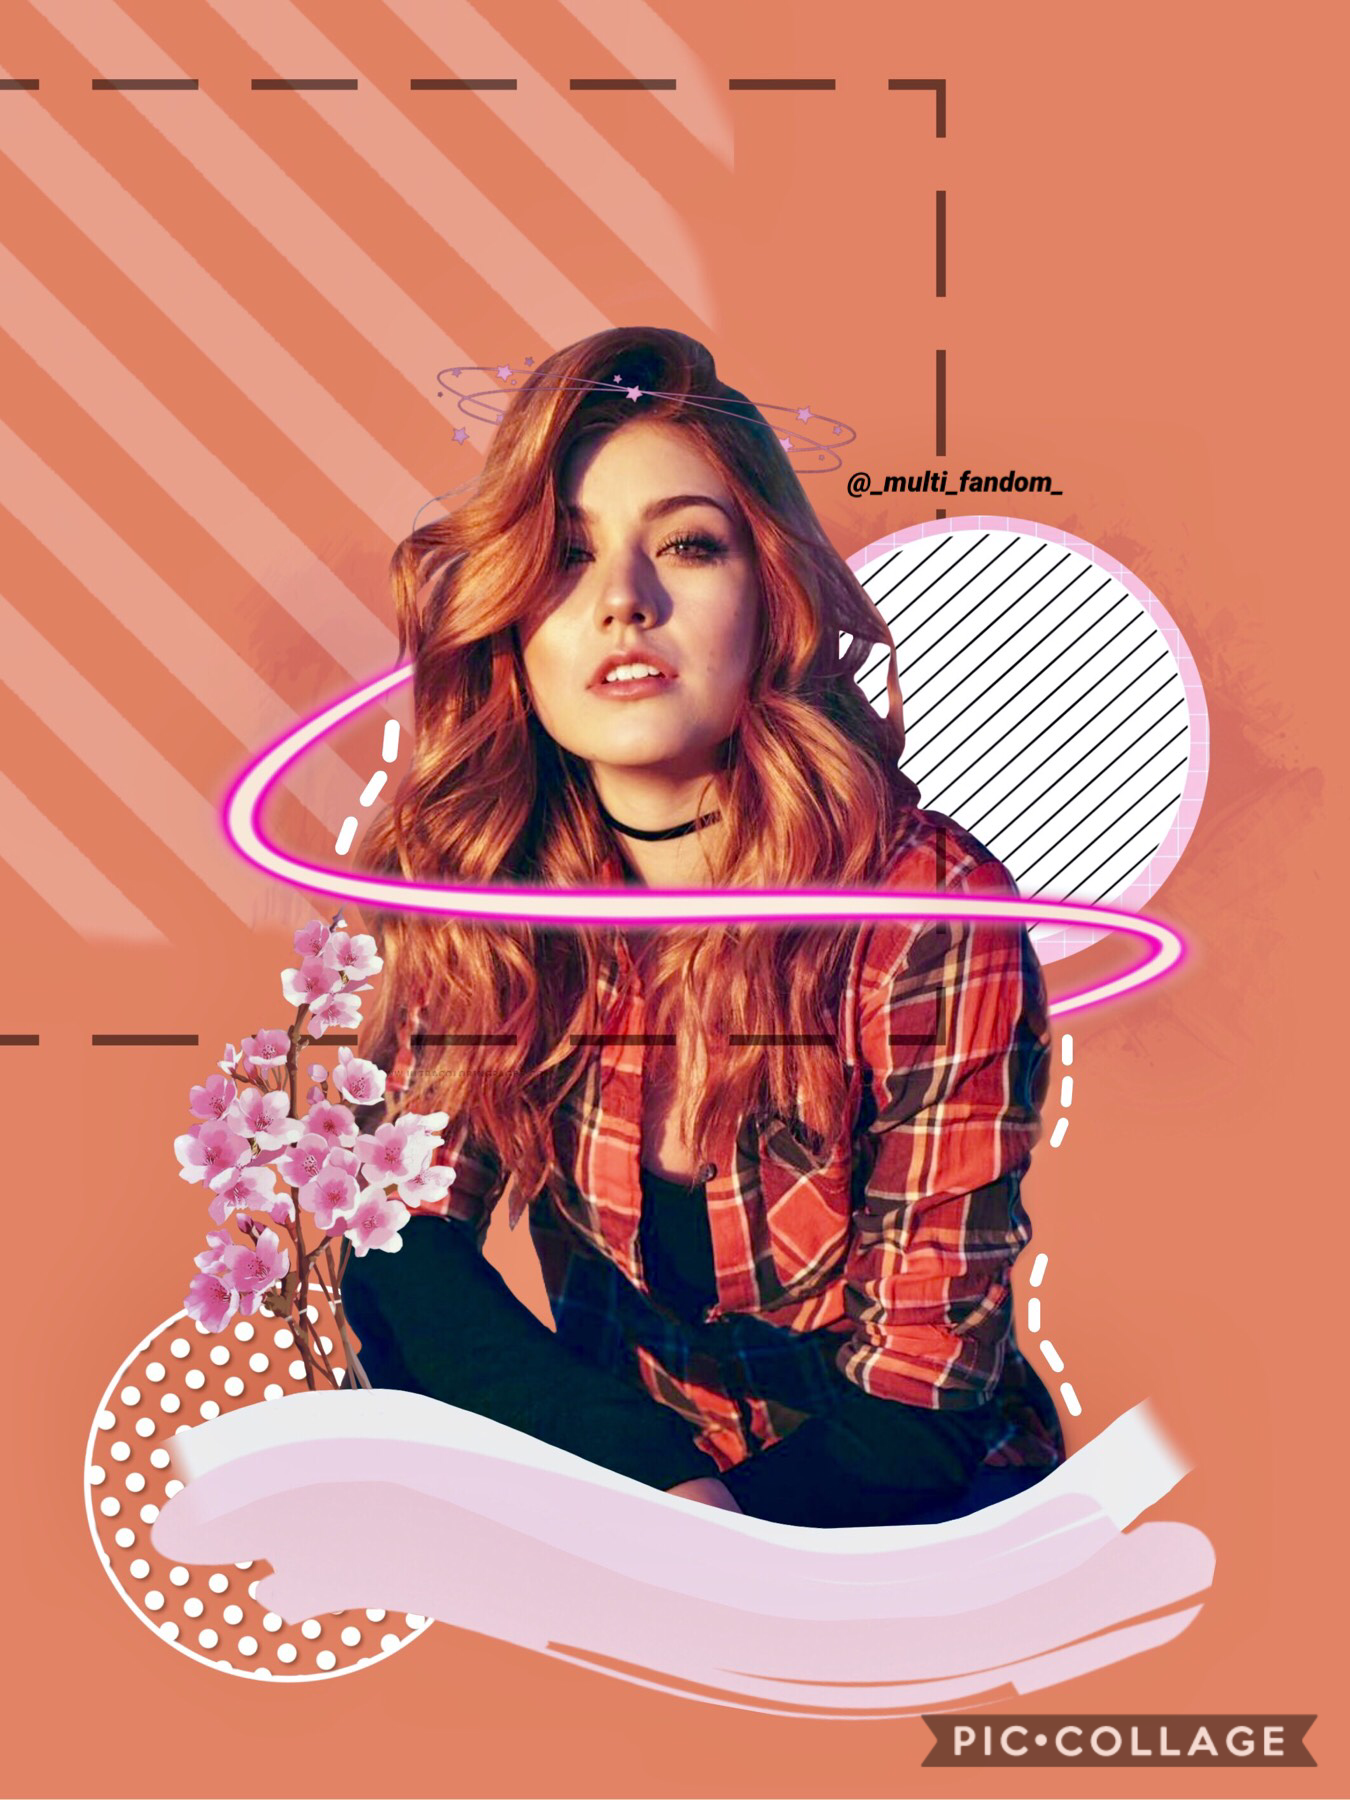 this is Katherine McNamara, also know as clary fray from shadowhunters! also, thanks for 200 followers that's crazy!!